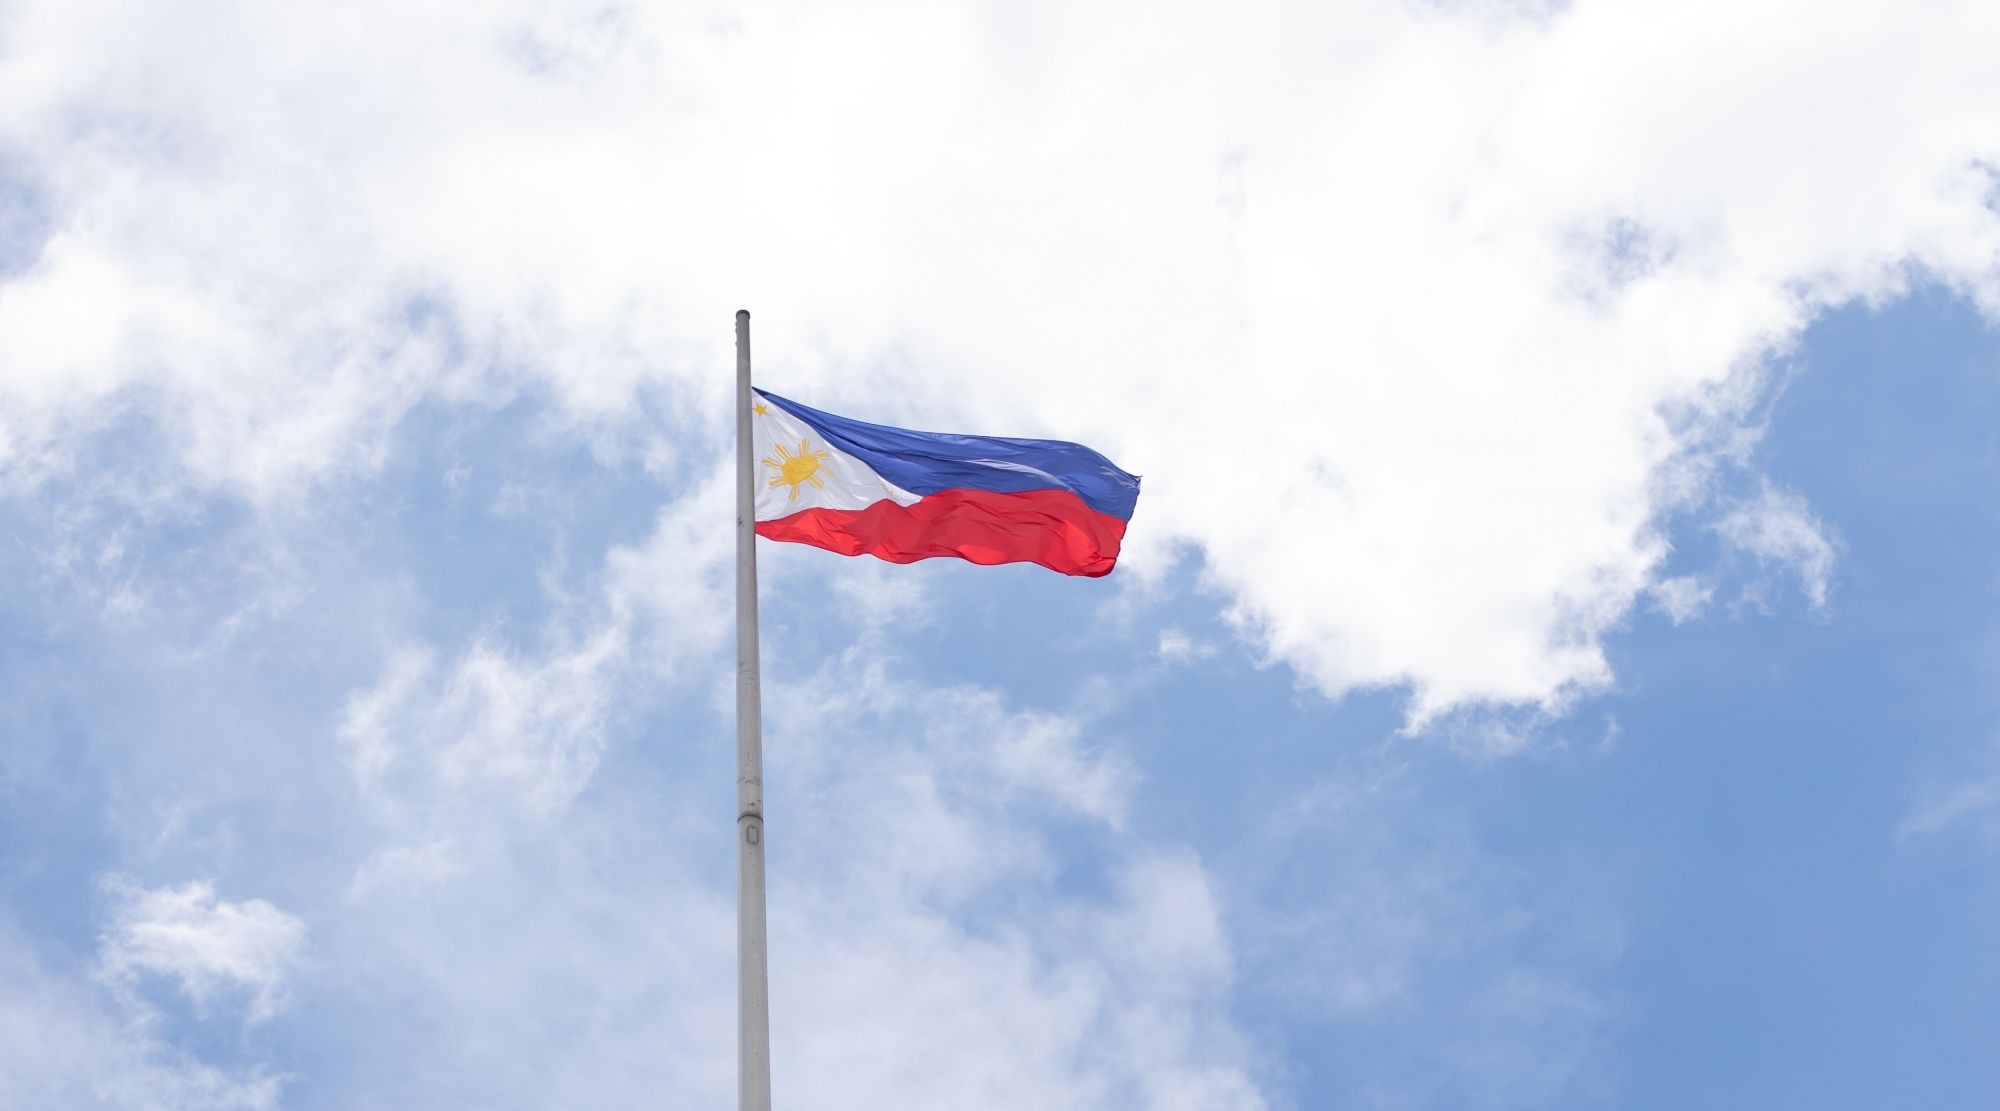 Philippine Independence Day: 5 Inspiring Filipino Biographies And Autobiographies To Read